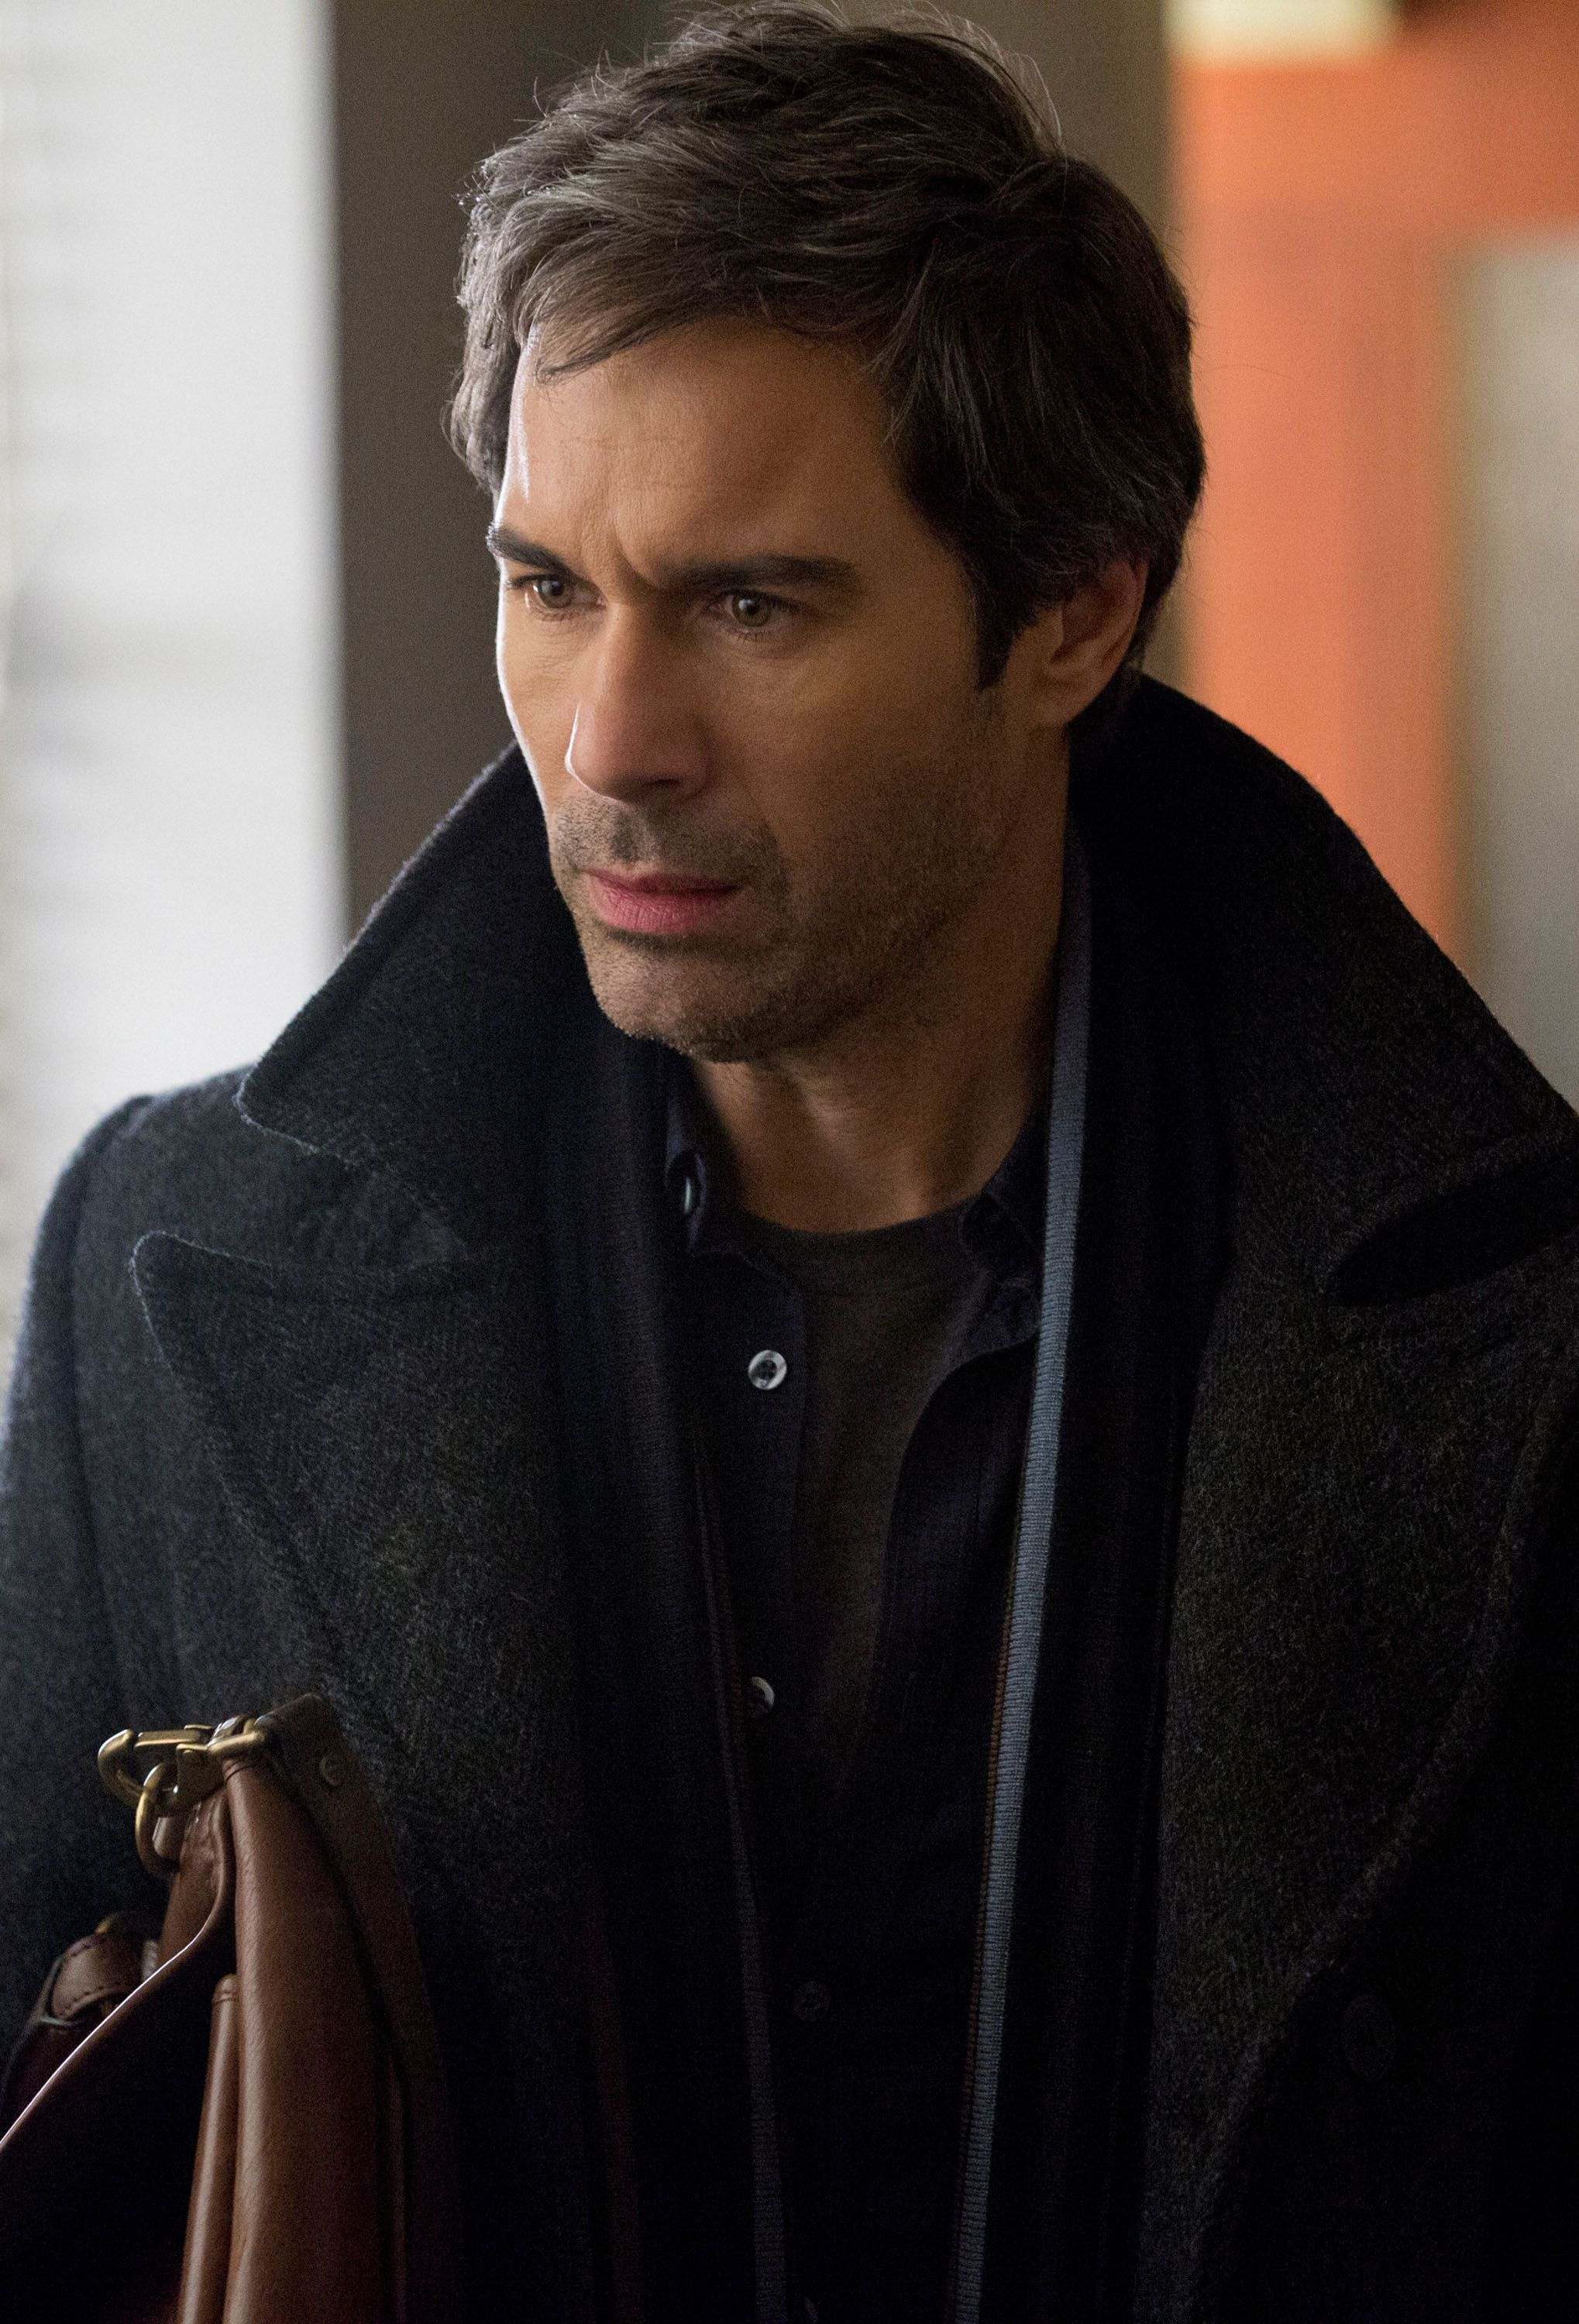 eric mccormack mysteries of laura